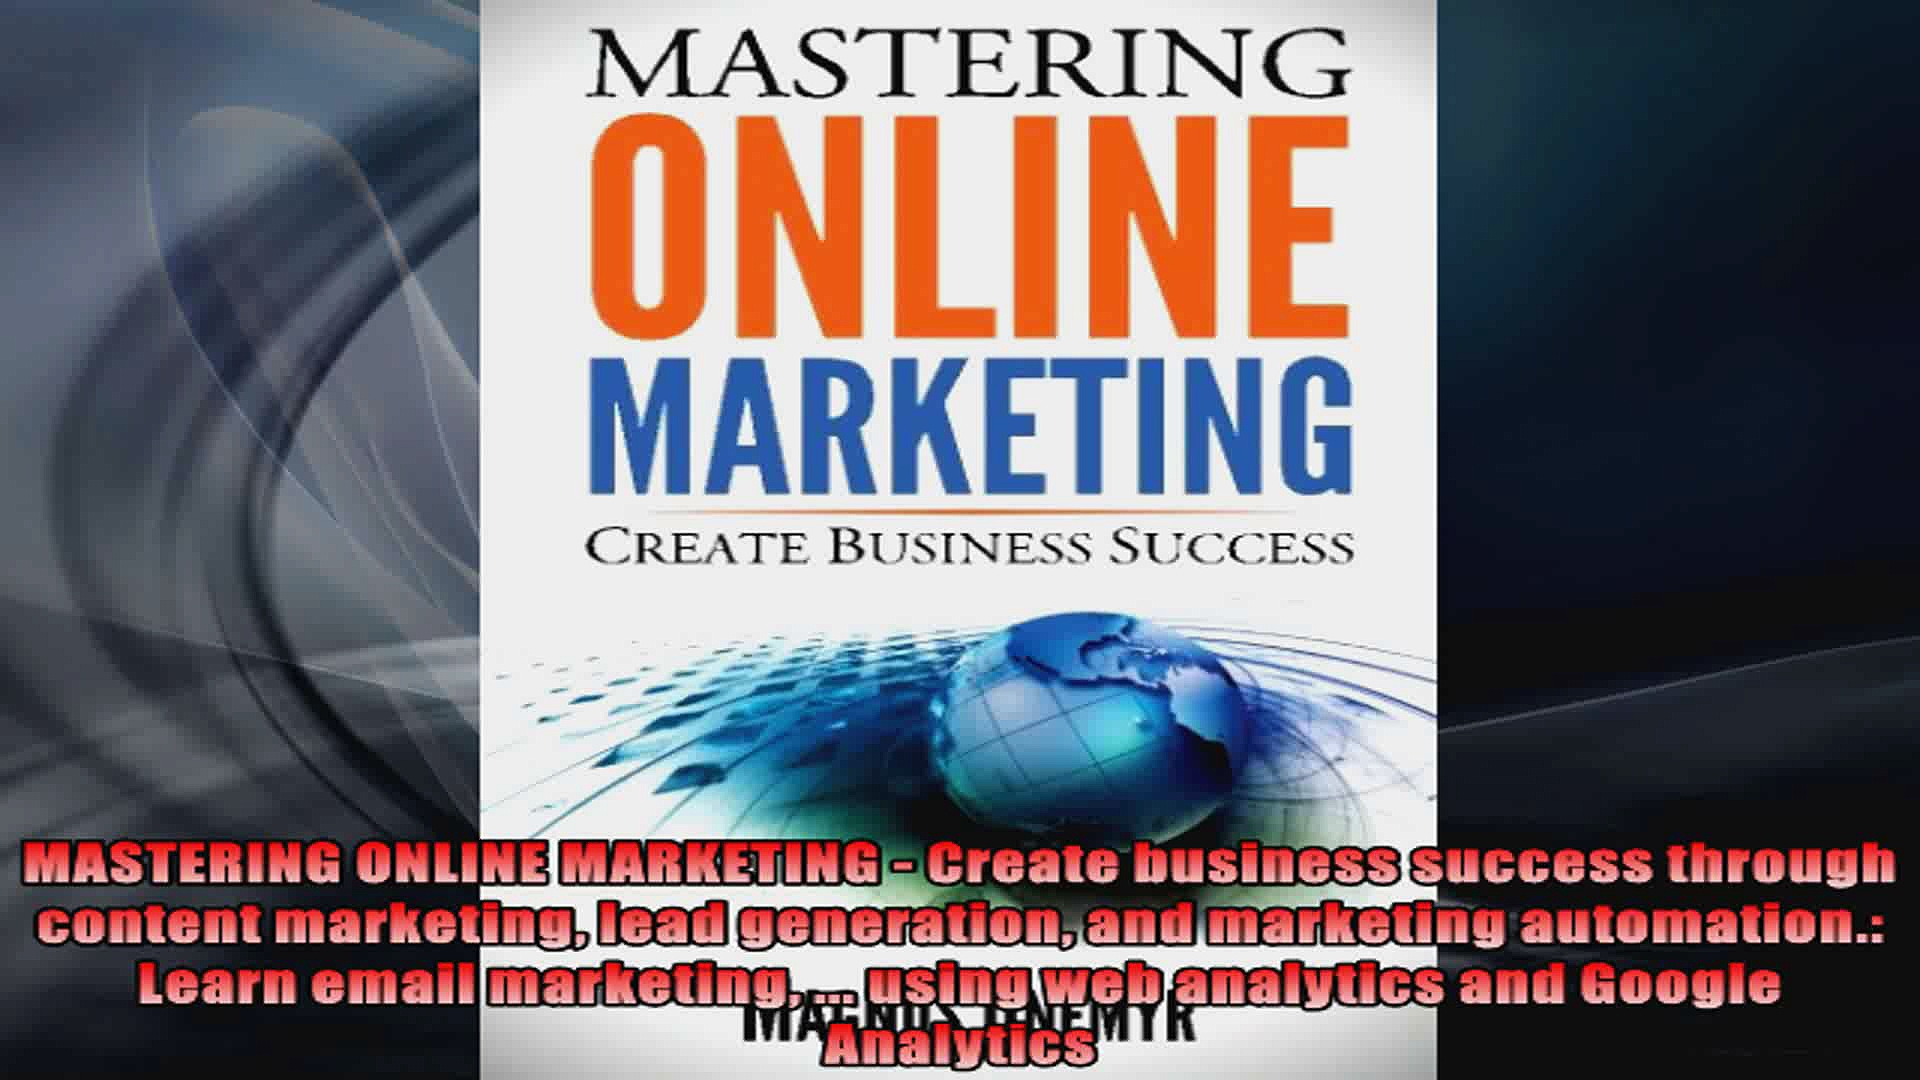 MASTERING ONLINE MARKETING  Create business success through content marketing lead